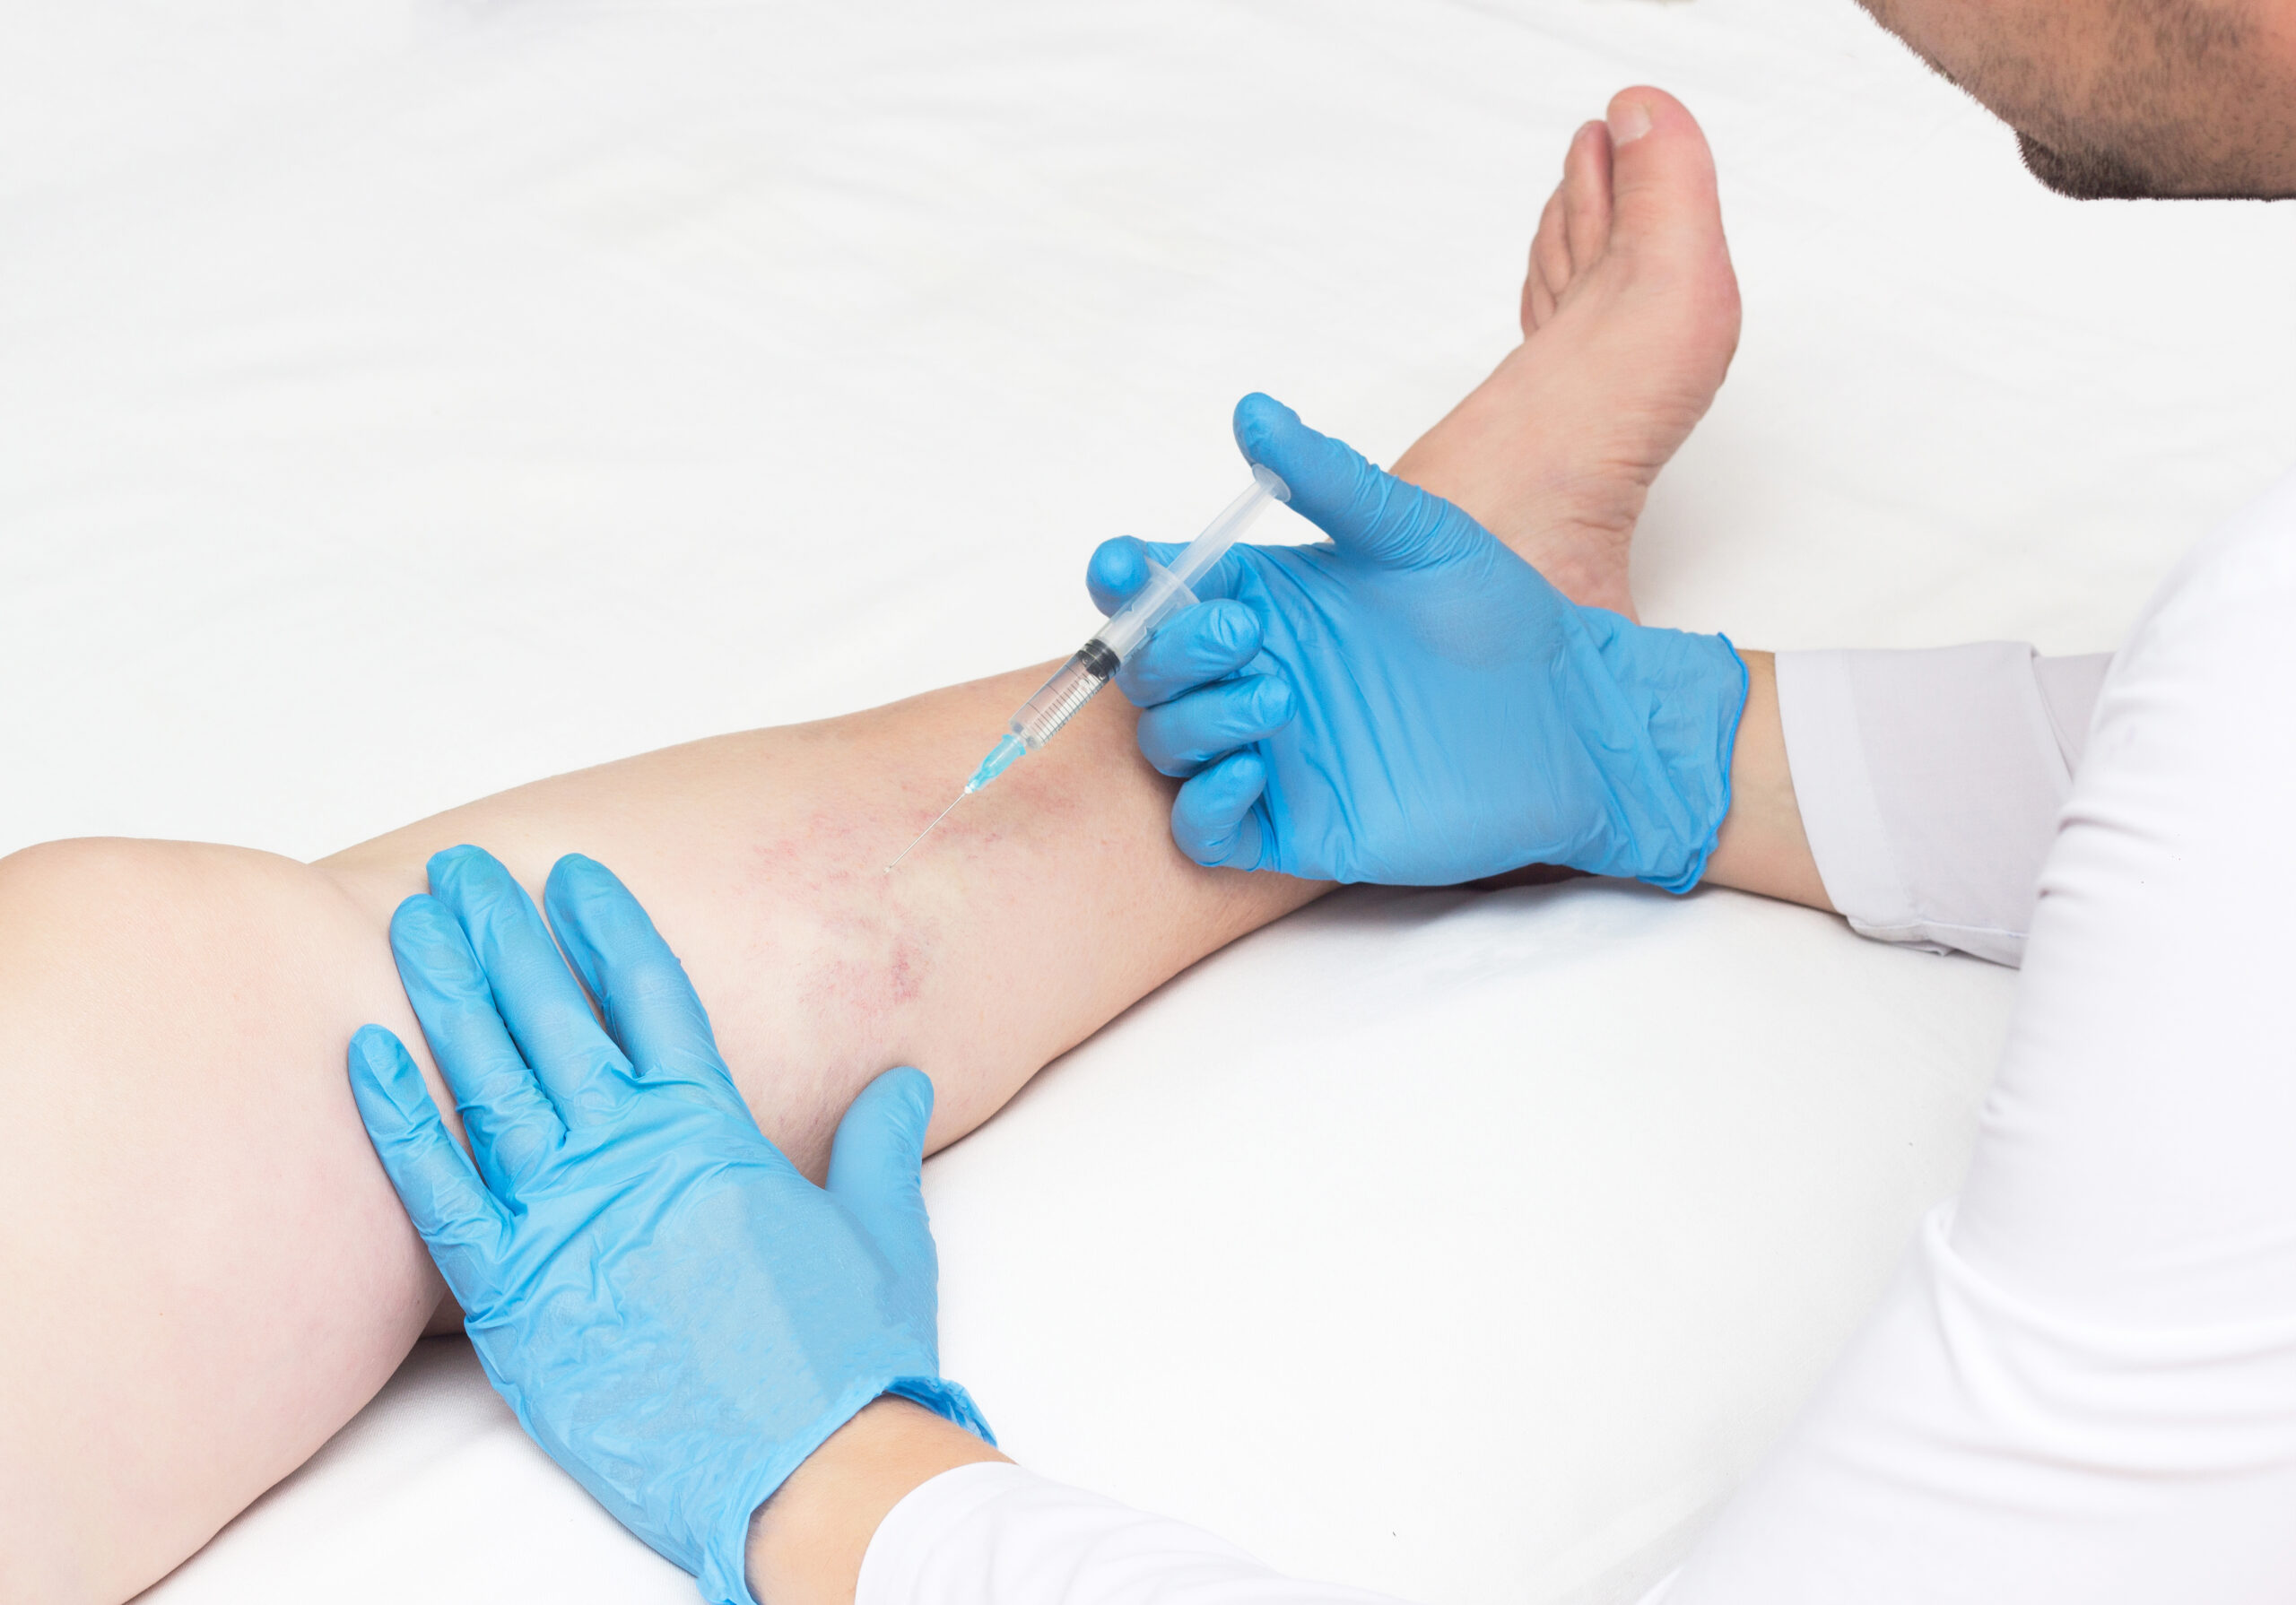 How do I know when to make an appointment at a vein center in NY? Board-certified vein doctors in New York talk about five signs that you should go to a reputable vein center to seek treatment for vein disease.